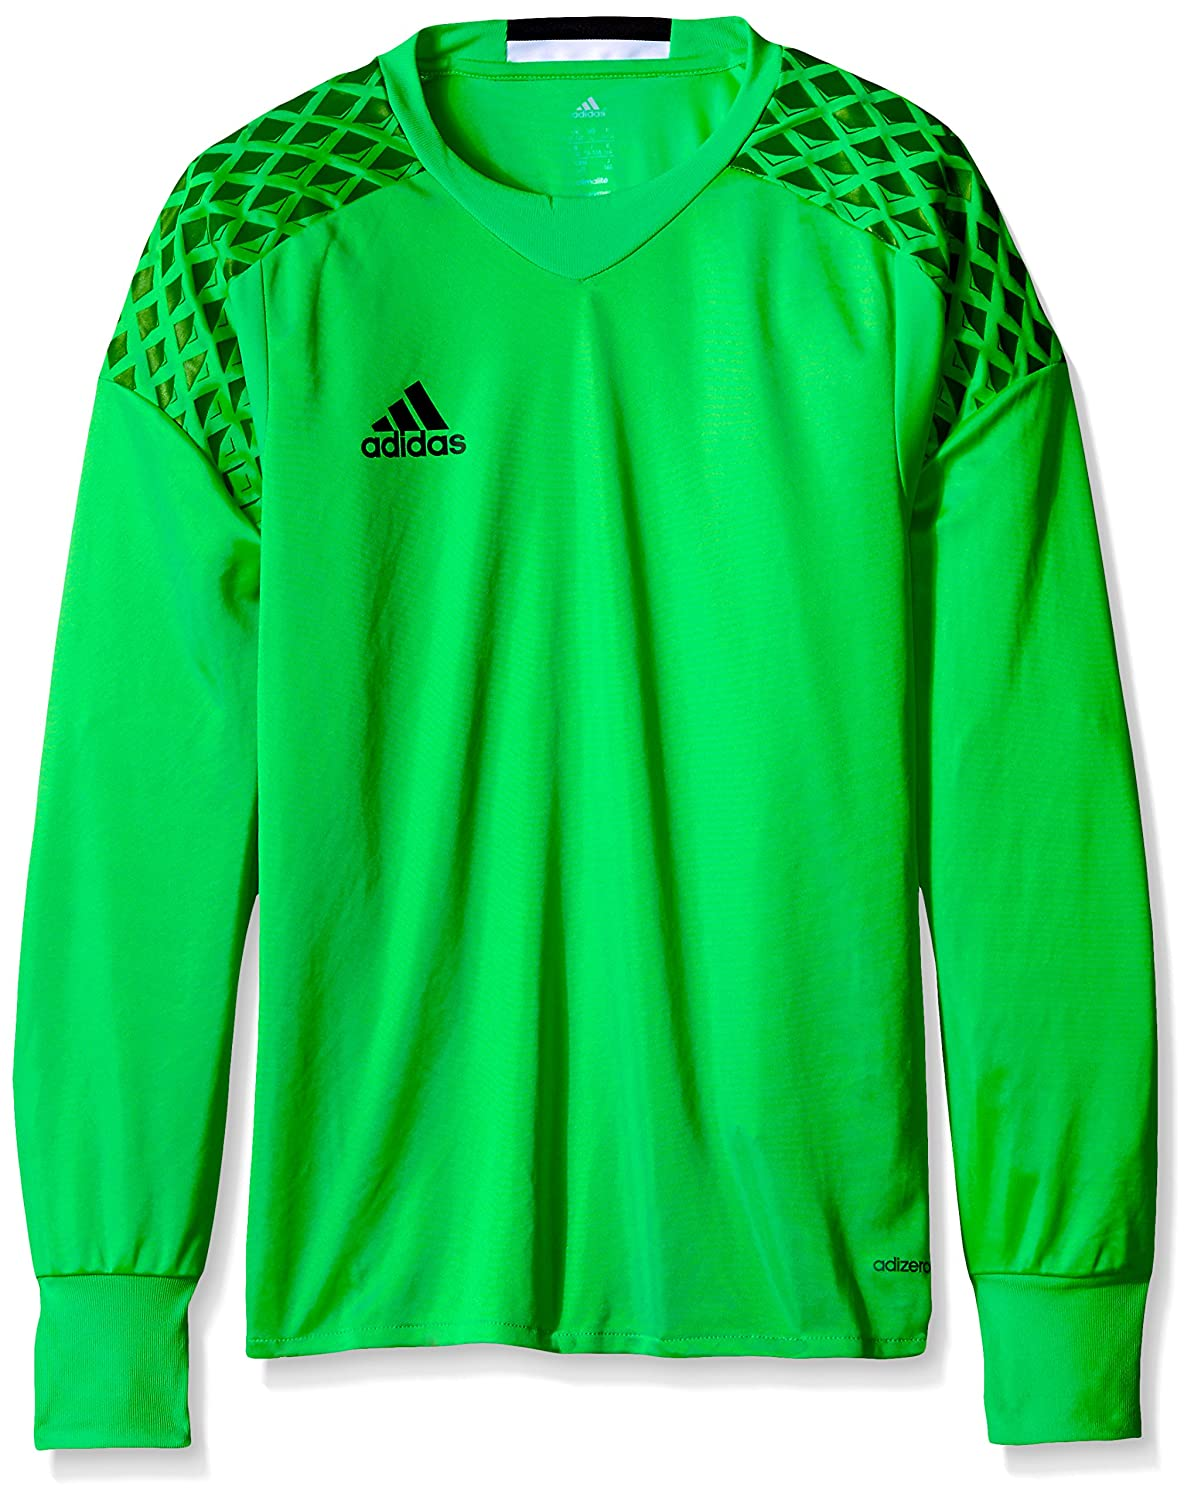 83168ae922d Amazon.com : adidas Youth Onore 16 Goalkeeping Jersey : Sports & Outdoors